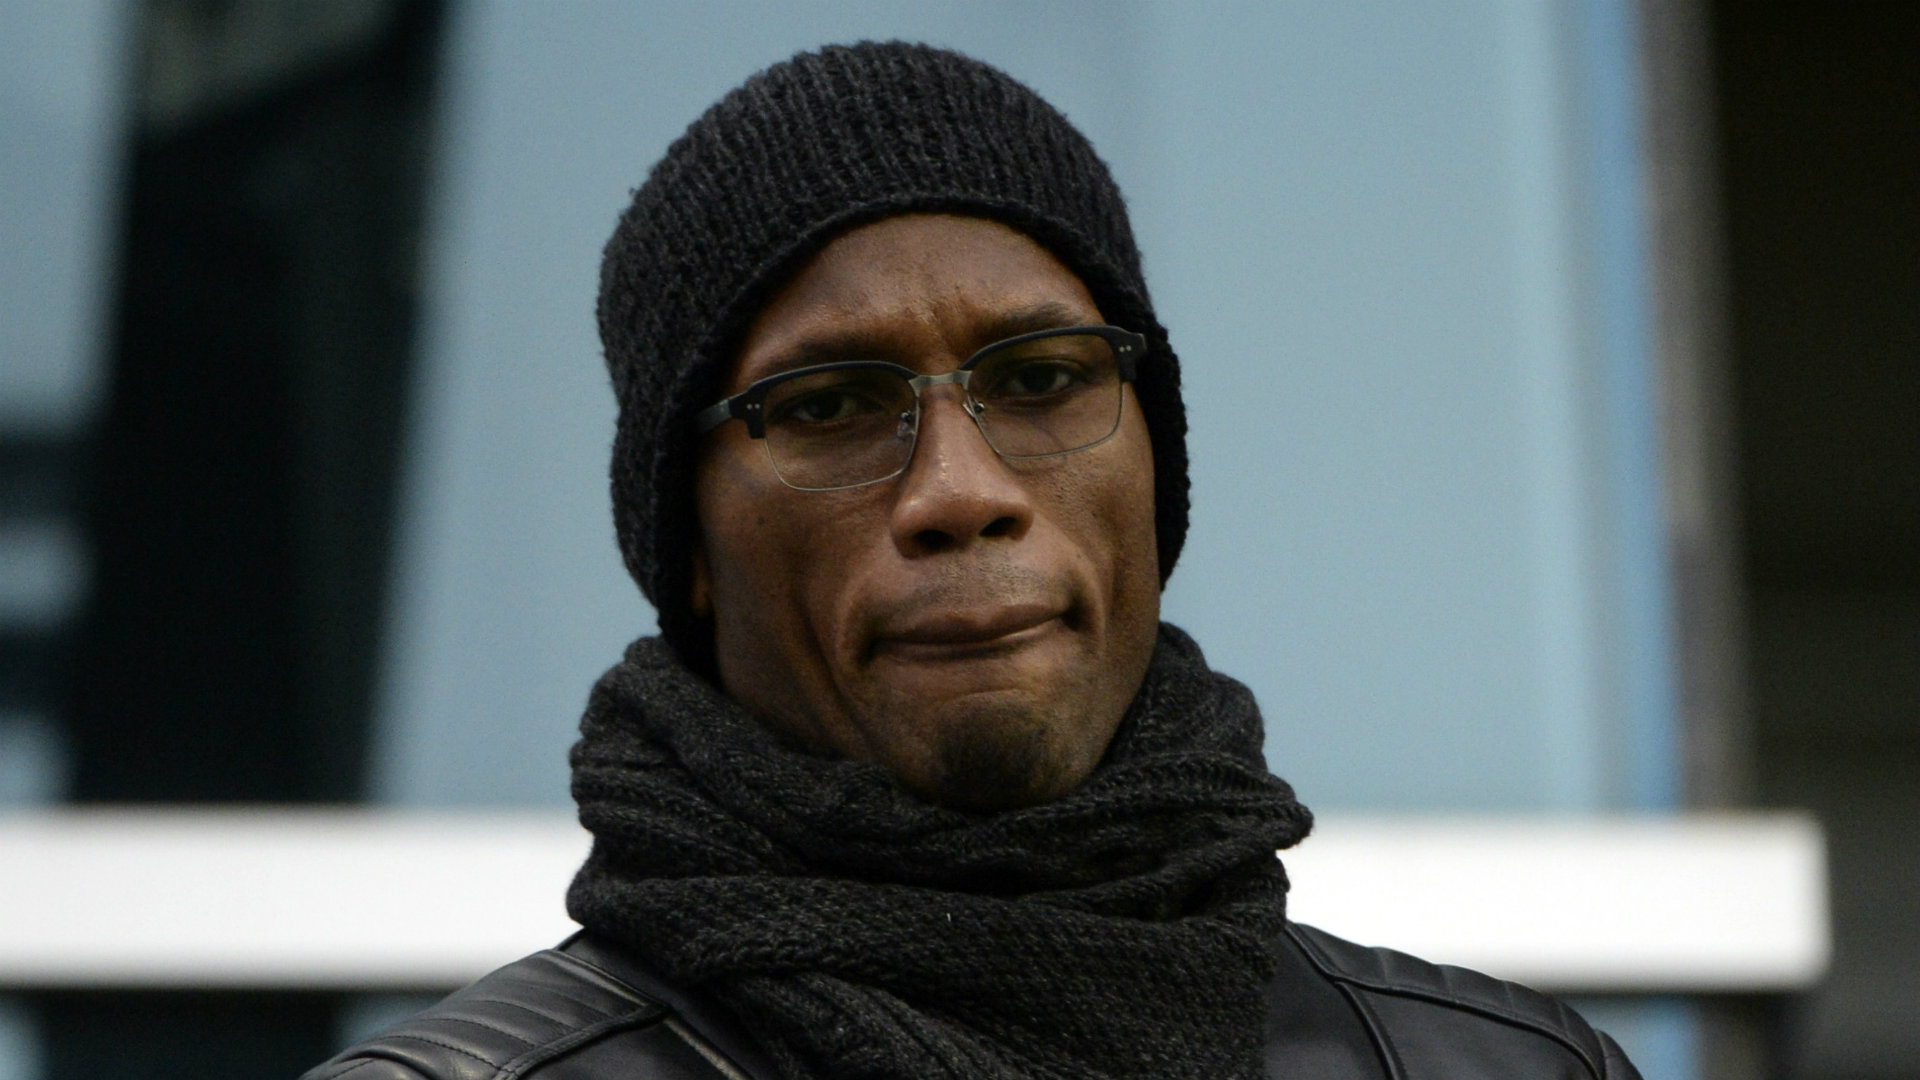 Ex-Chelsea star Drogba declared ineligible for Ivory Coast FA presidential election